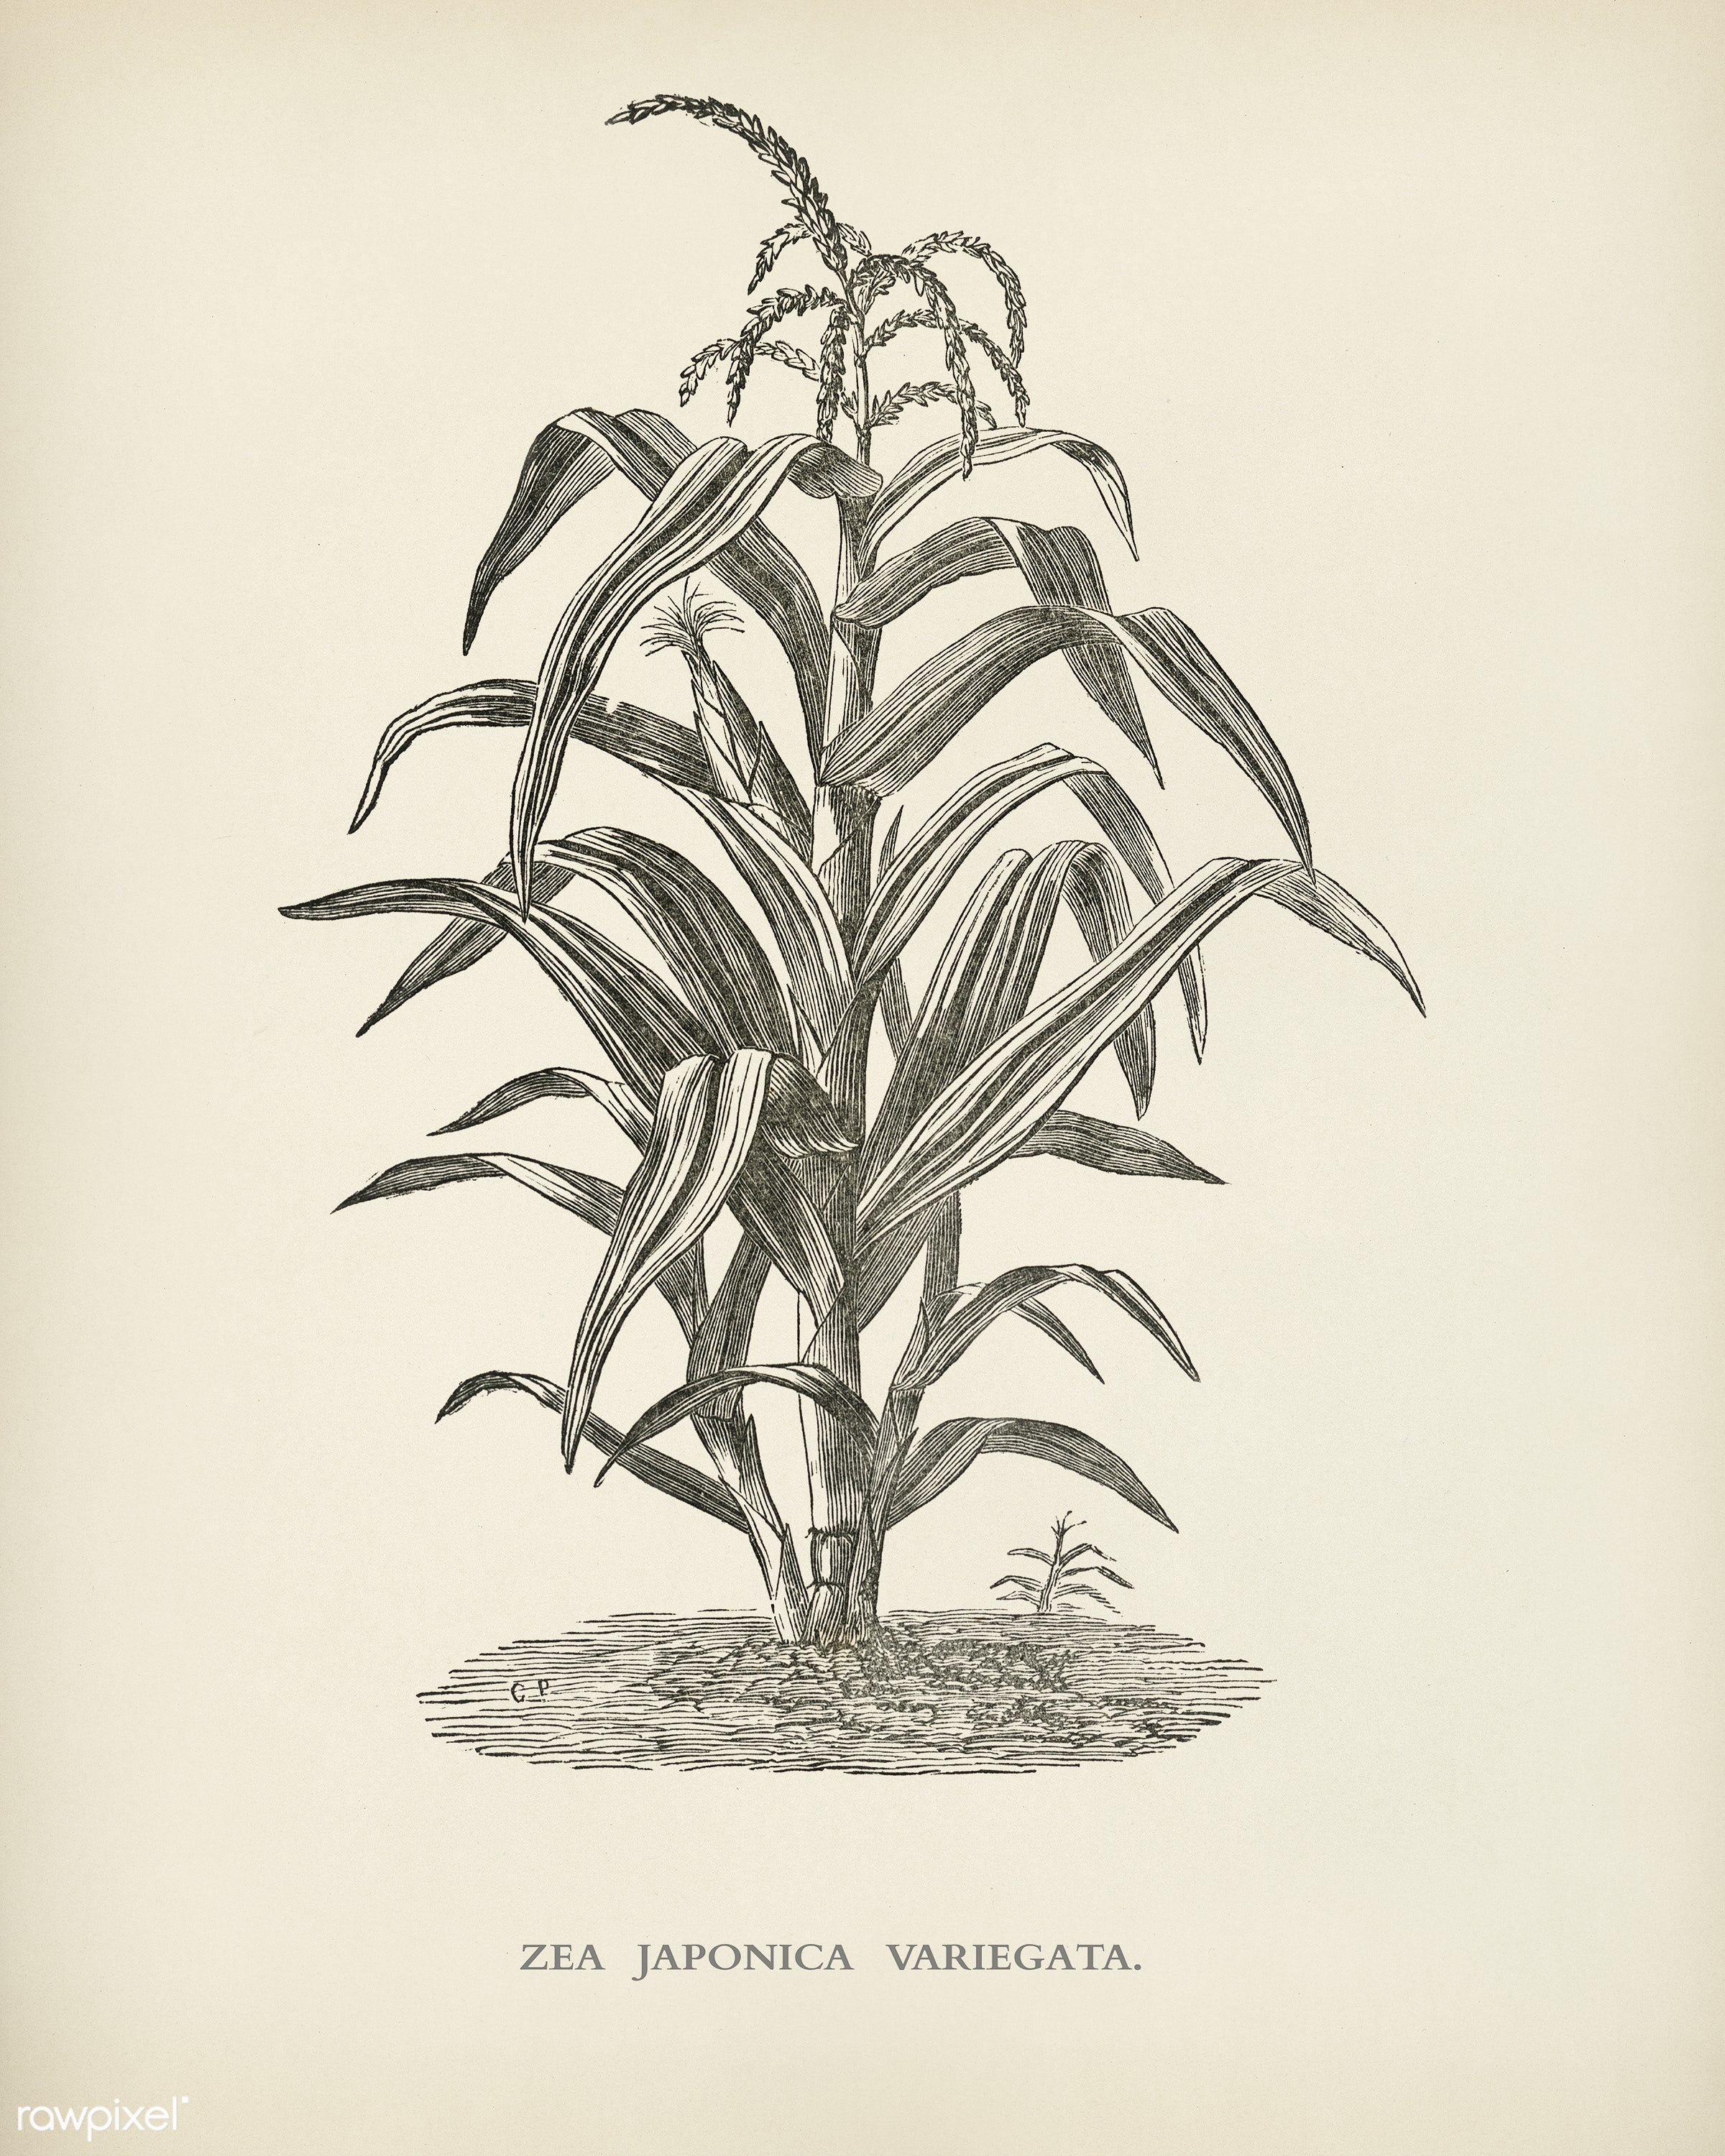 Variegated Japanese Corn ( Zea japonica variegata) engraved by Benjamin Fawcett (1808-1893) for Shirley Hibberd's (...